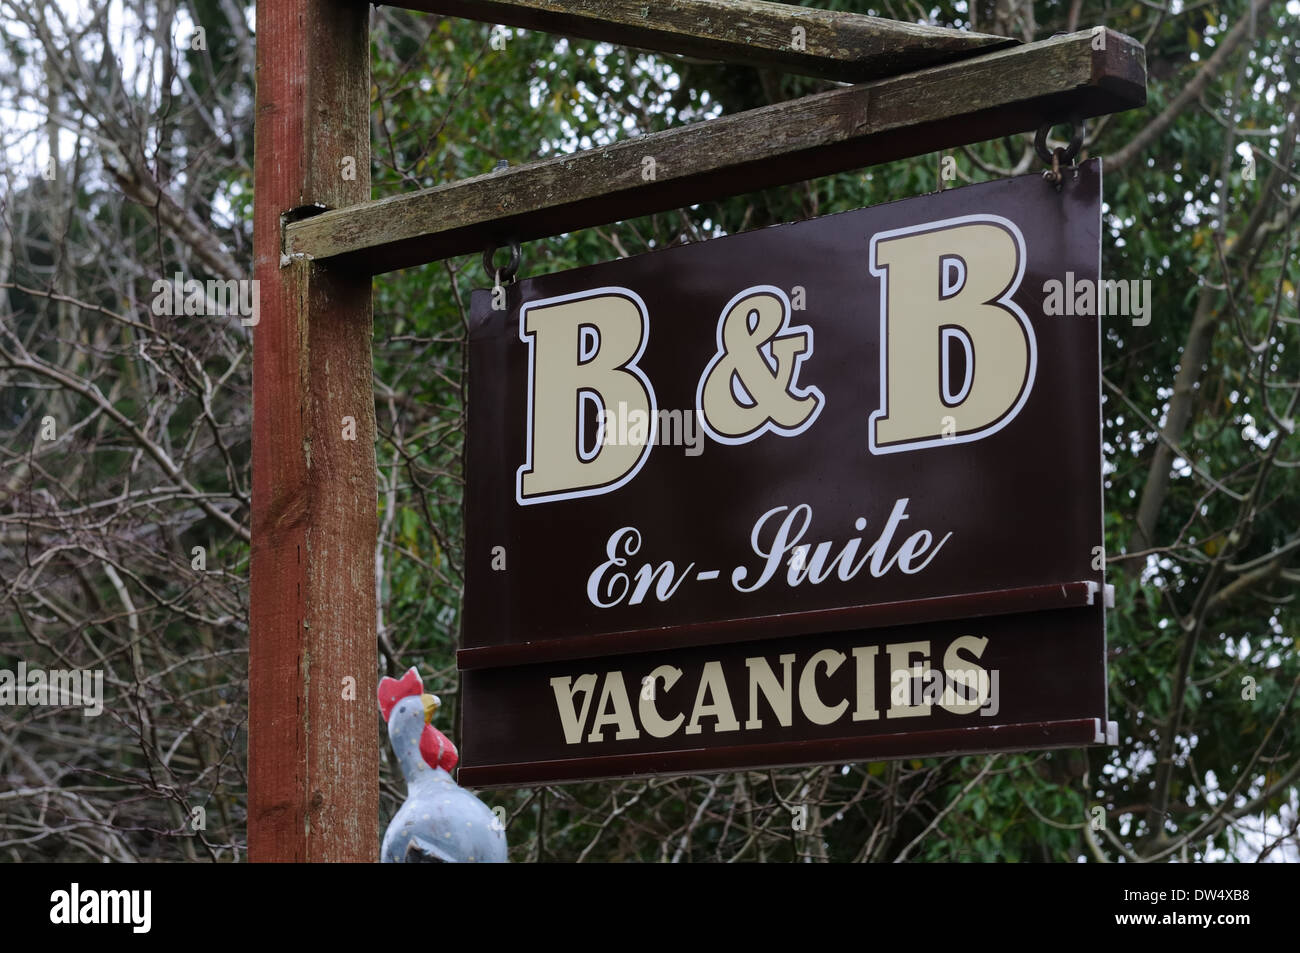 Bed and breakfast vacancy sign - Stock Image